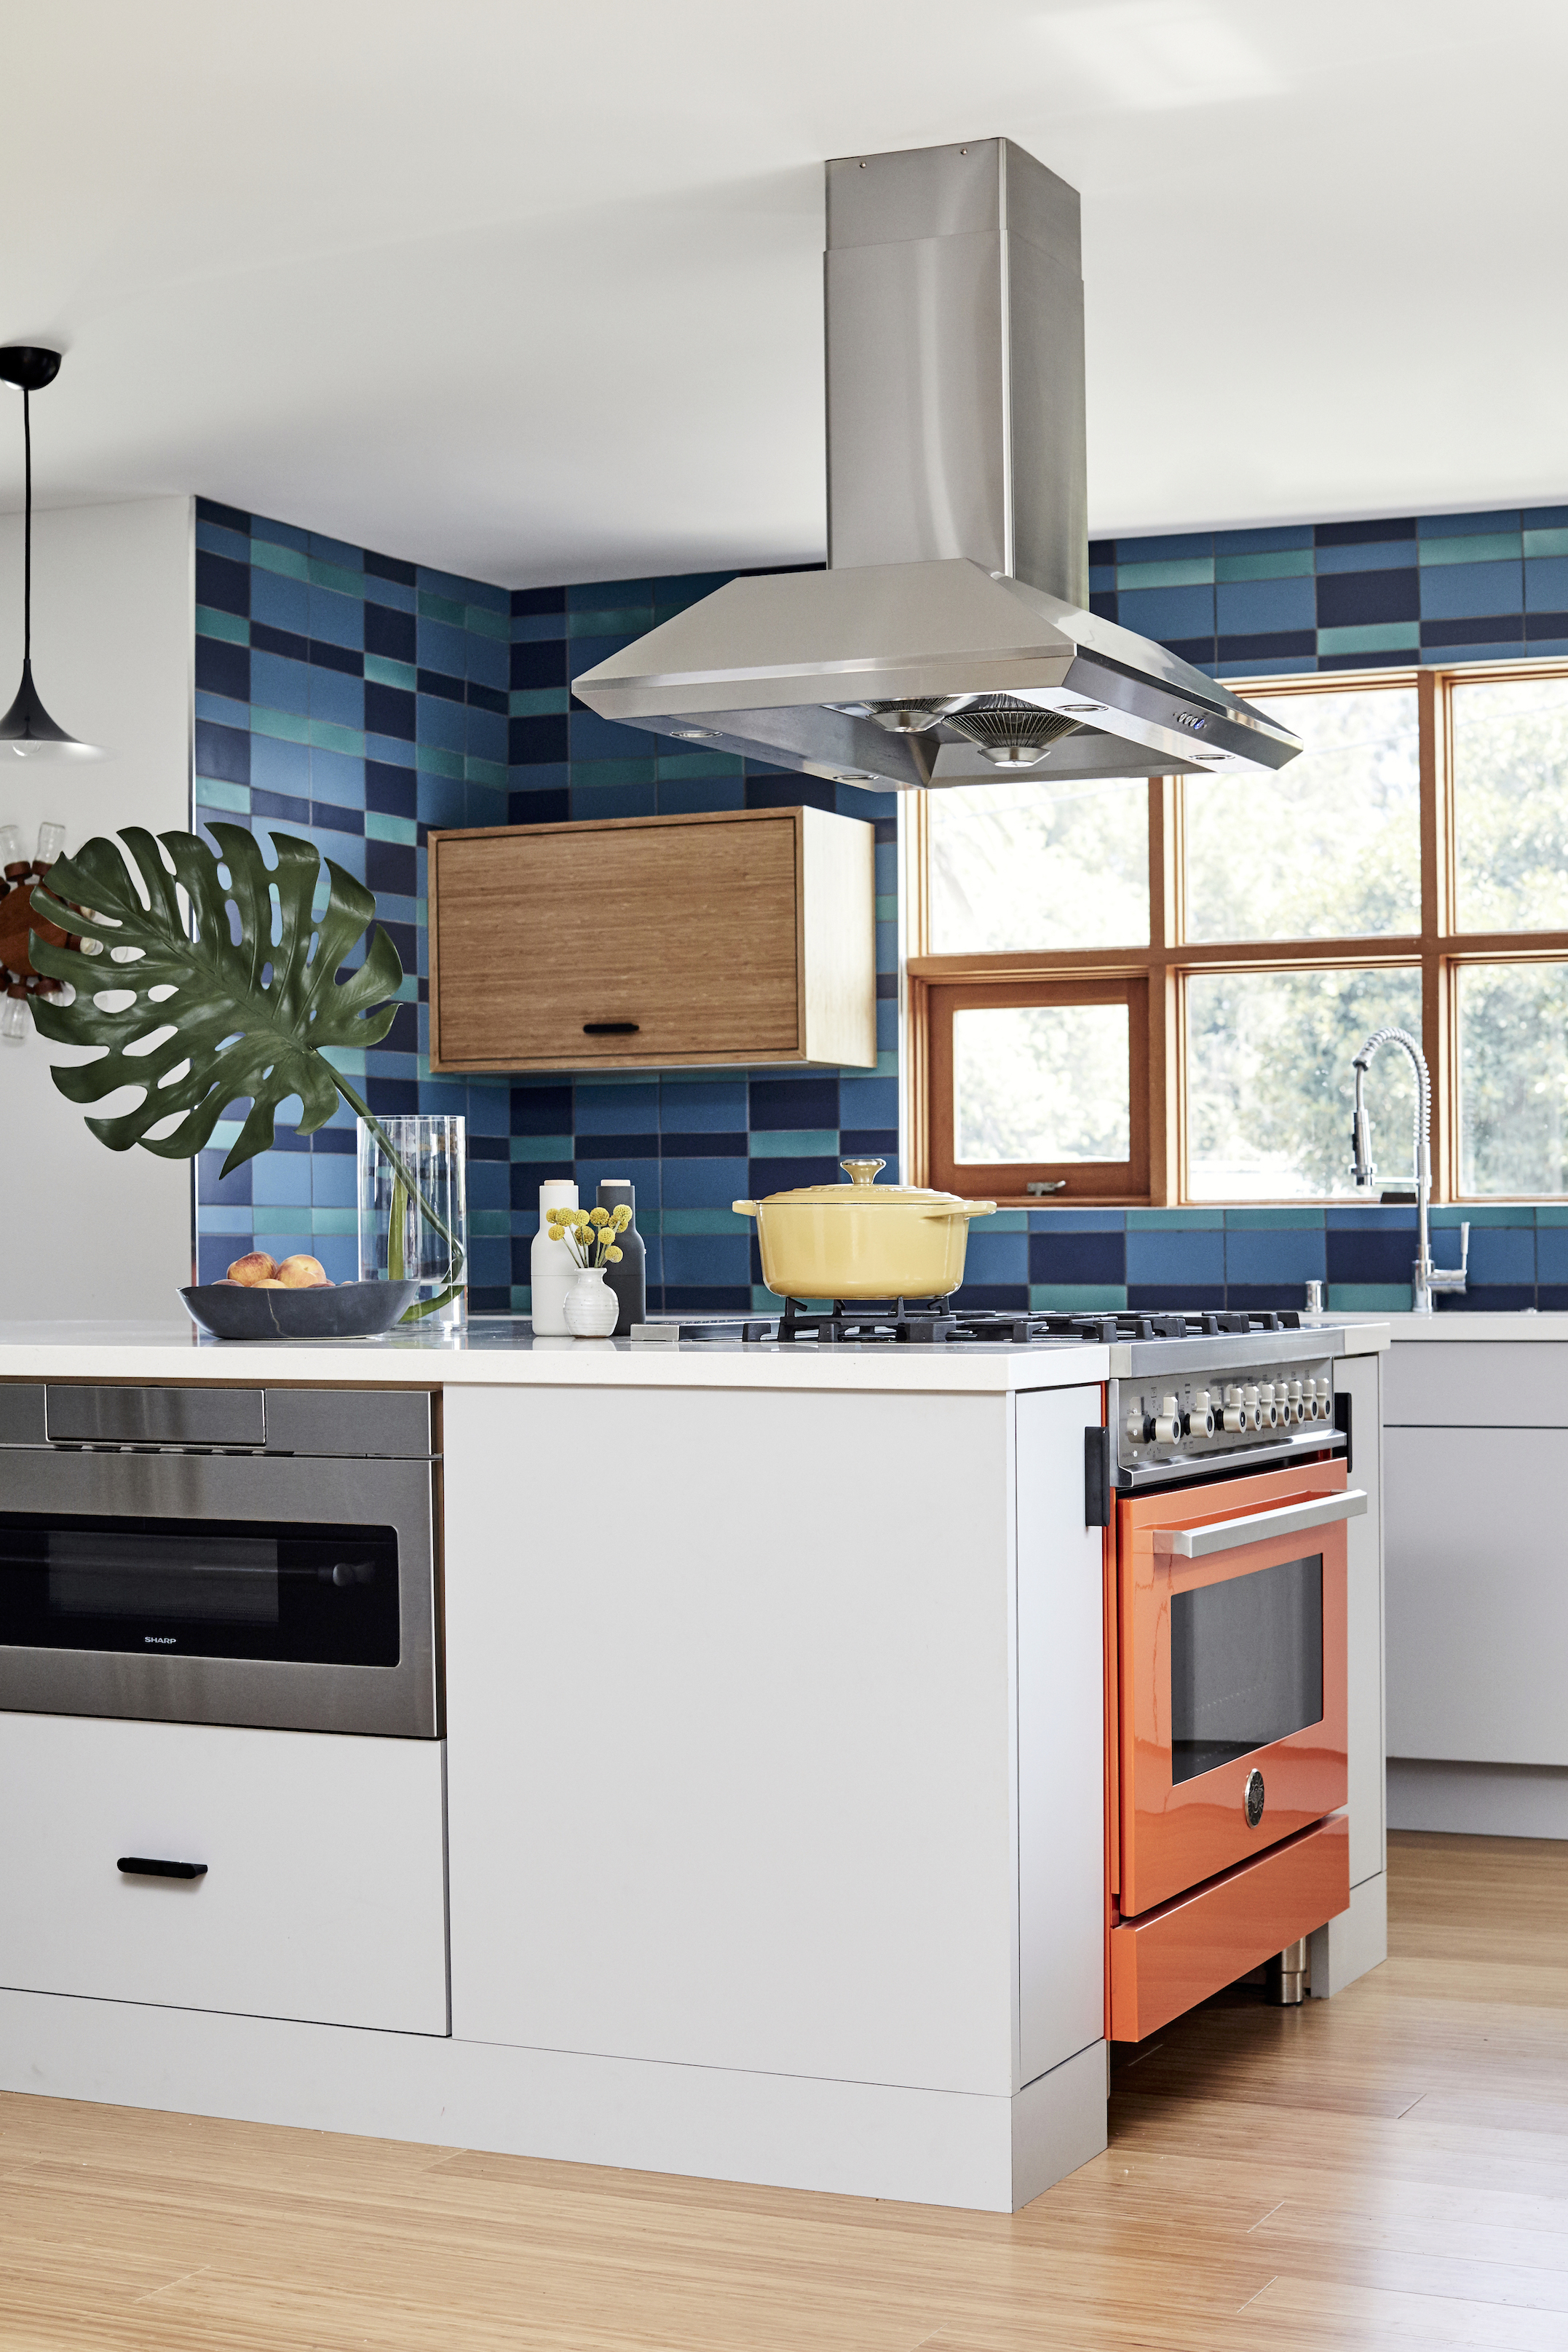 2017_q4_img_hi_res_rights_residential_the_niche_home_jenna_Peffley_photo_ceramic_kitchen_backsplash_plaid_peacock_2x8_4x8_fluorite_2x8_4x8_blue_velvet_2x8_4x8_blend_FC207276_2_181029_155910.jpg?mtime=20181029155910#asset:423606